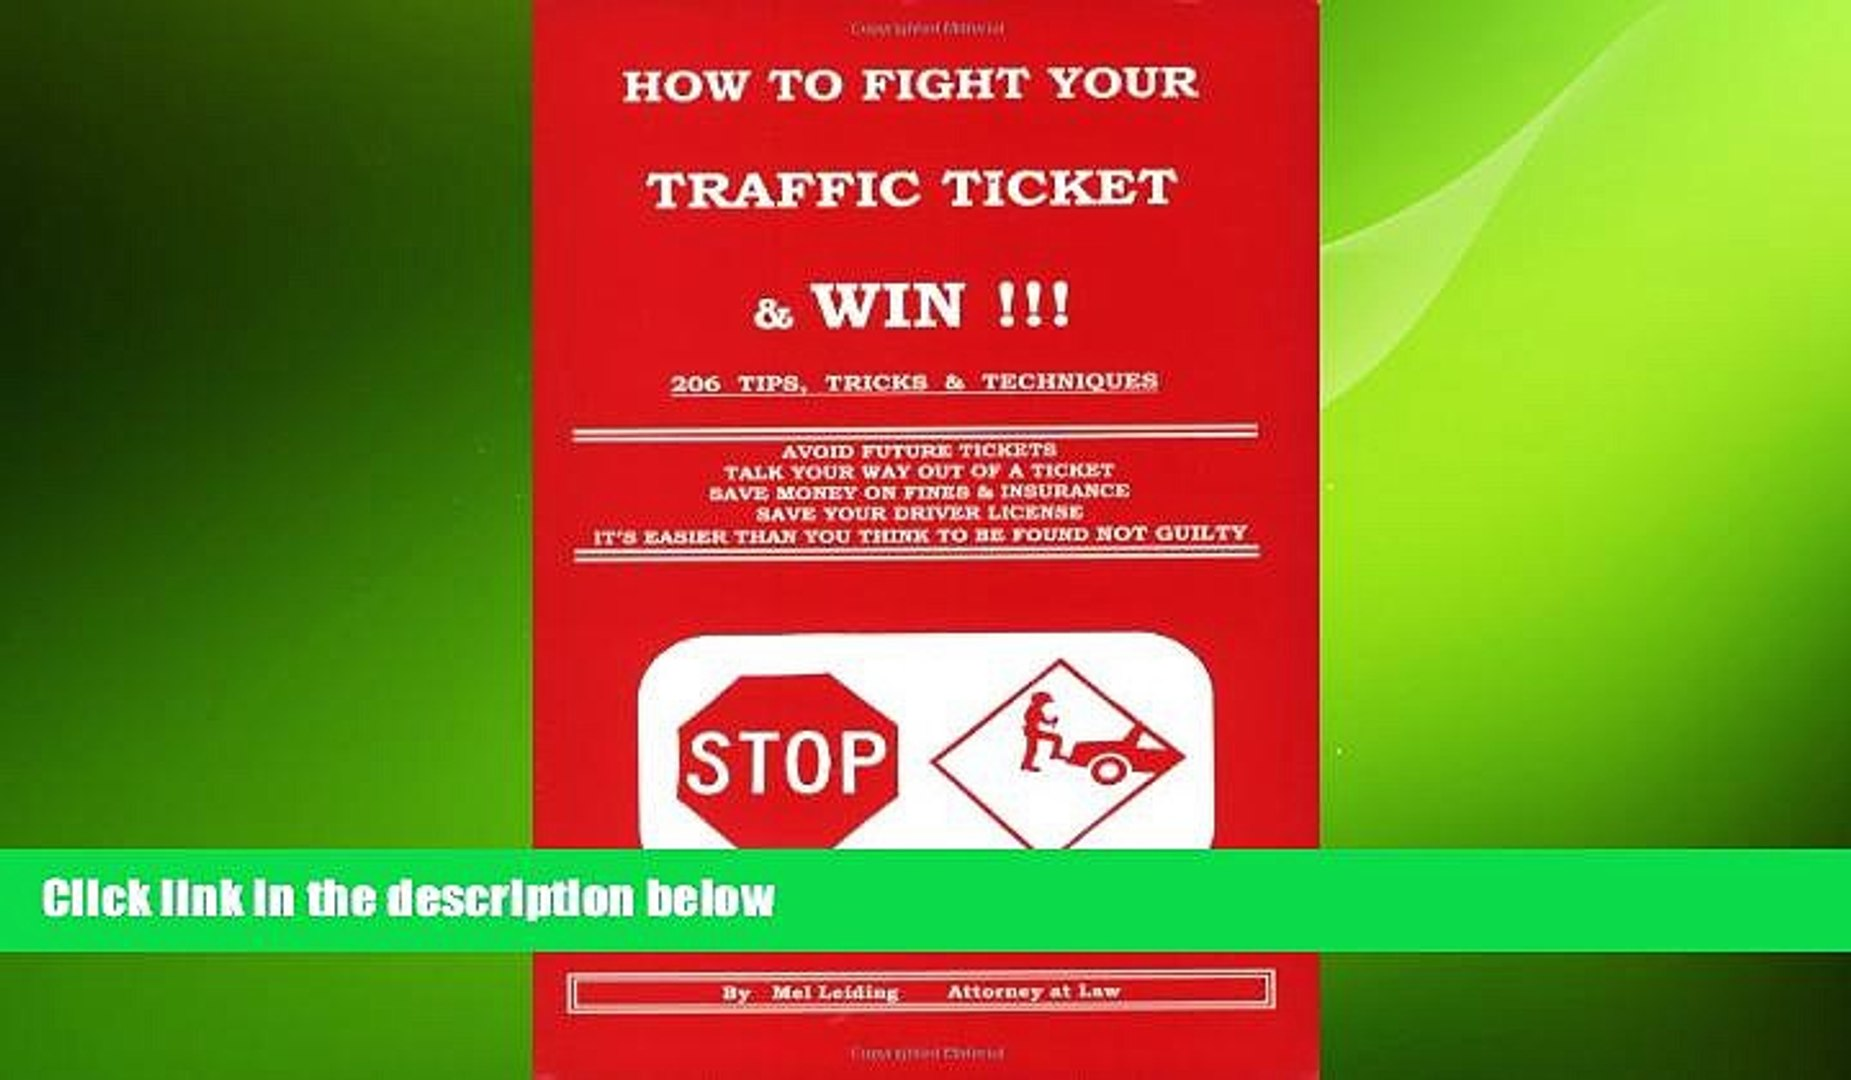 READ PDF [DOWNLOAD] How to Fight Your Traffic Ticket and Win!: 206 Tips Tricks and Techniques Mel